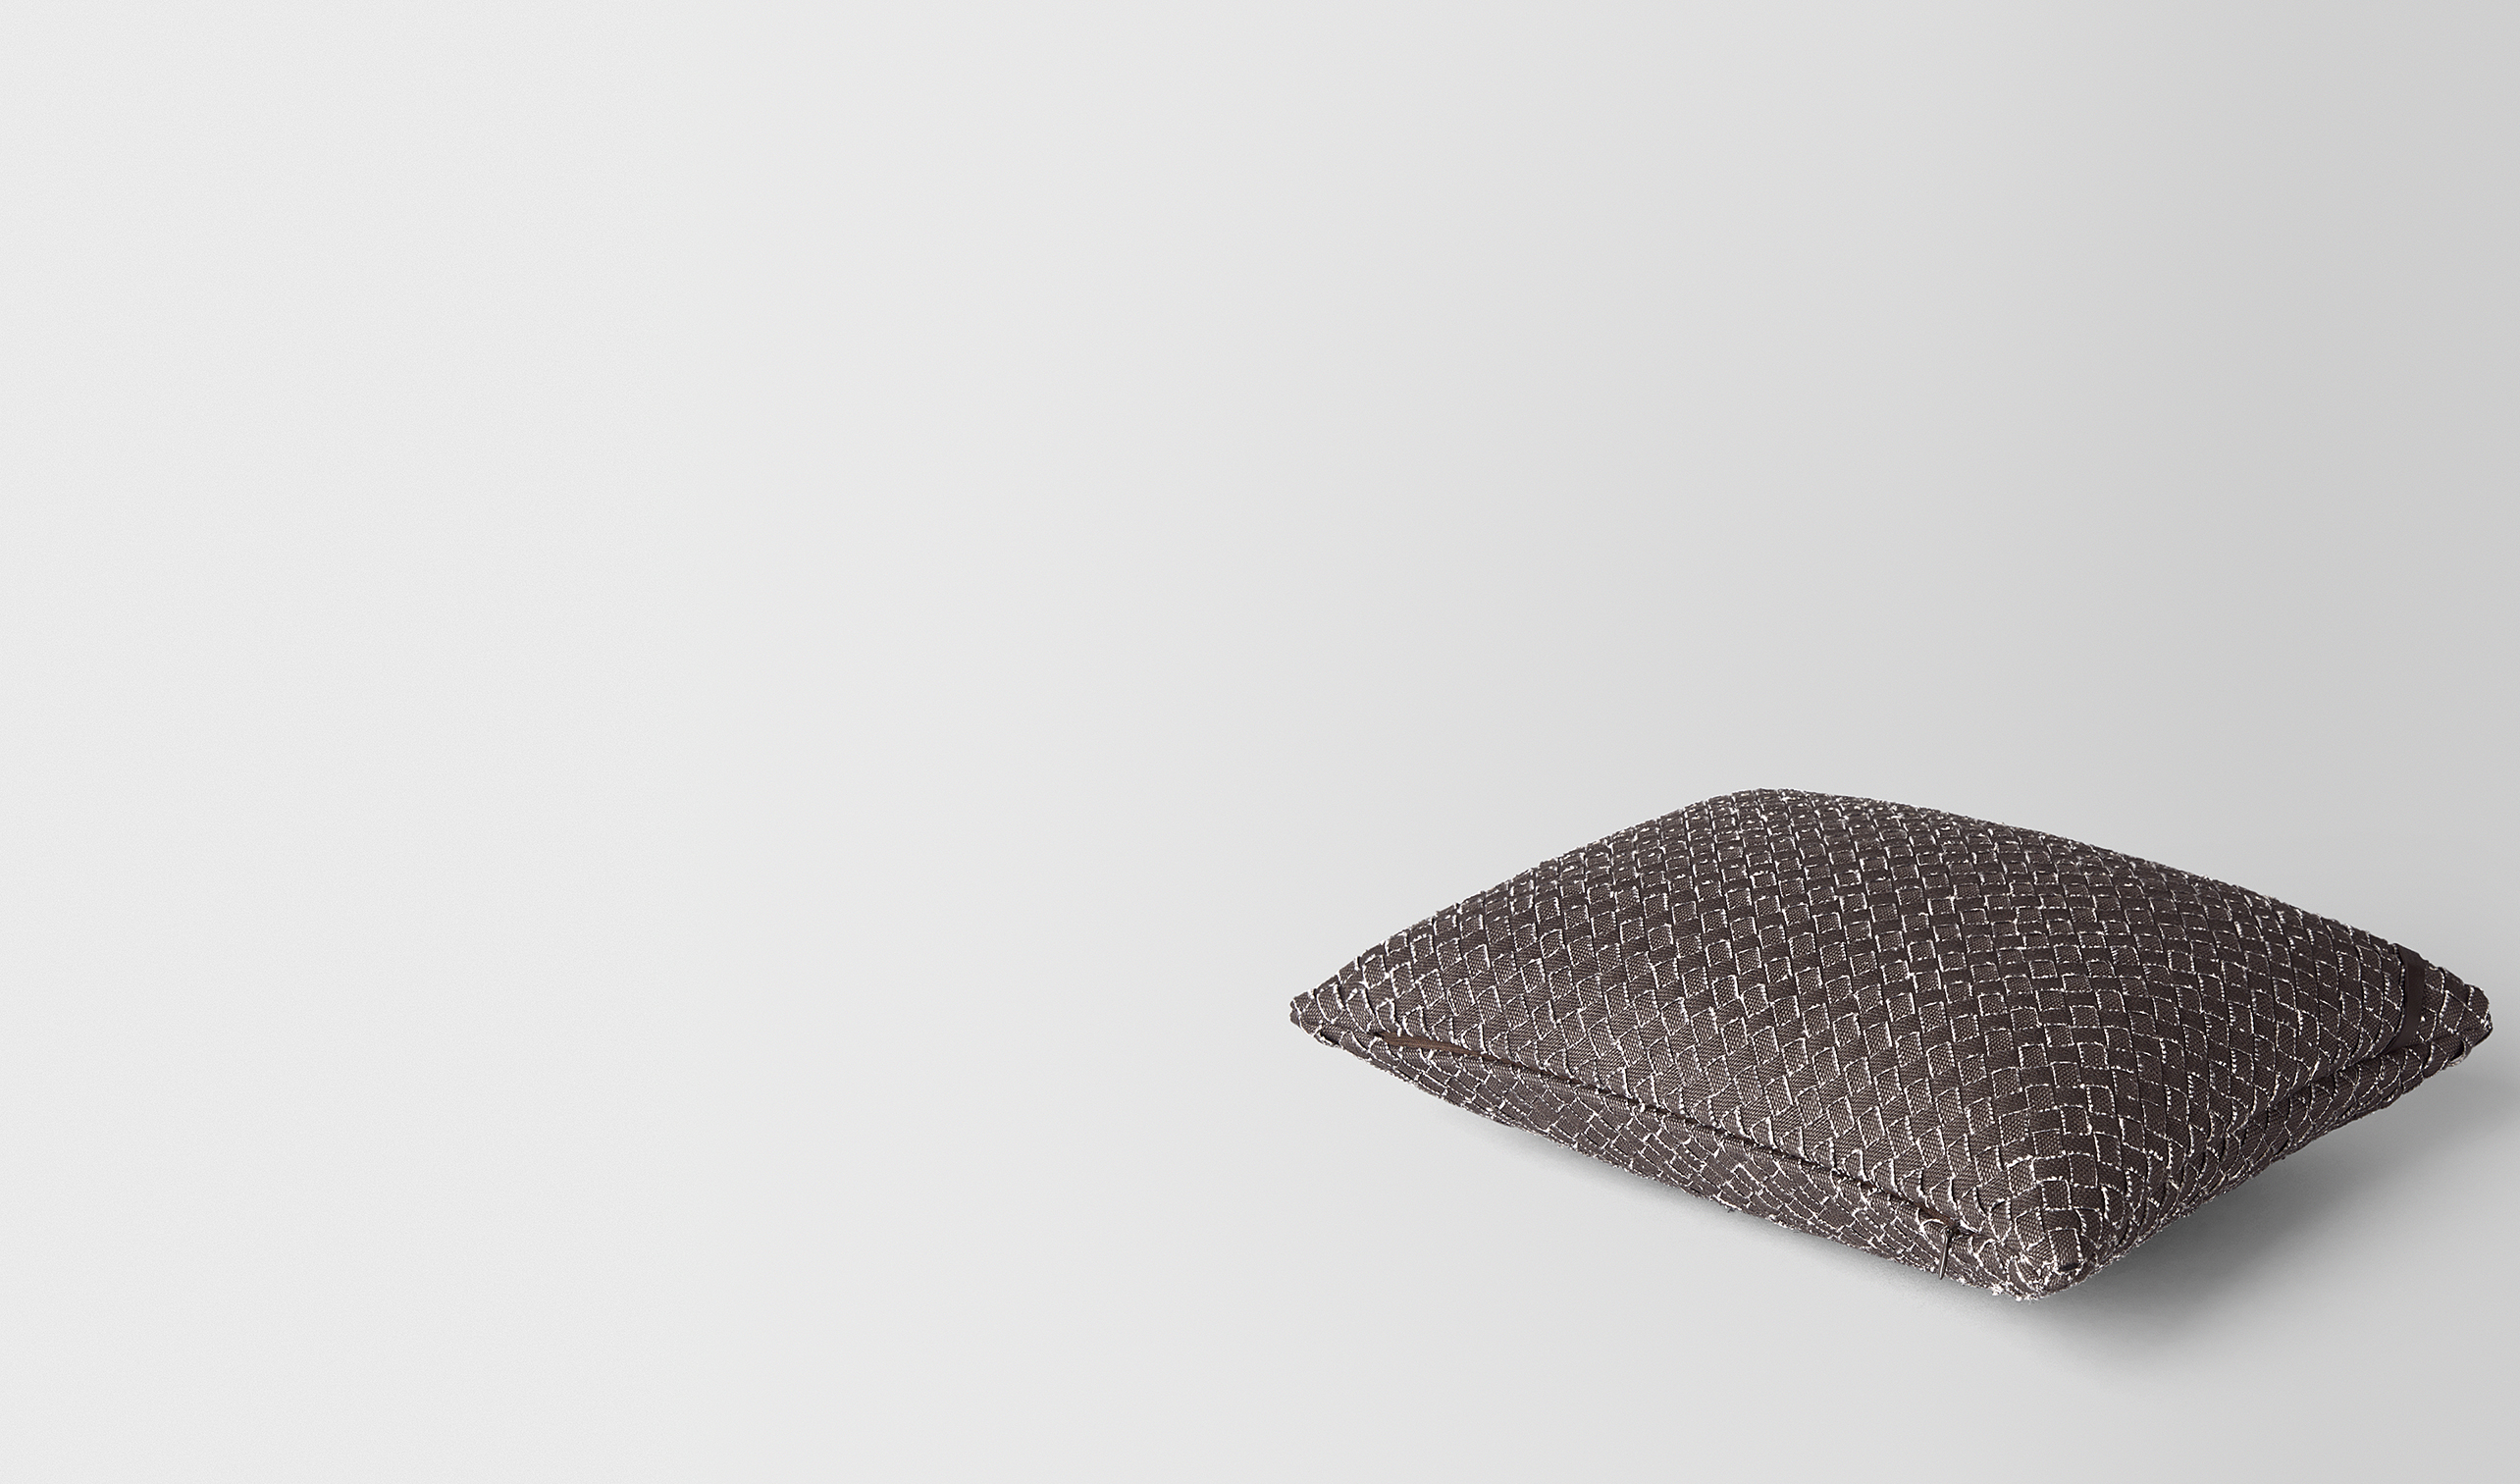 BOTTEGA VENETA Pillow and blanket E PILLOW IN CARBONE INTRECCIATO LINEN pl